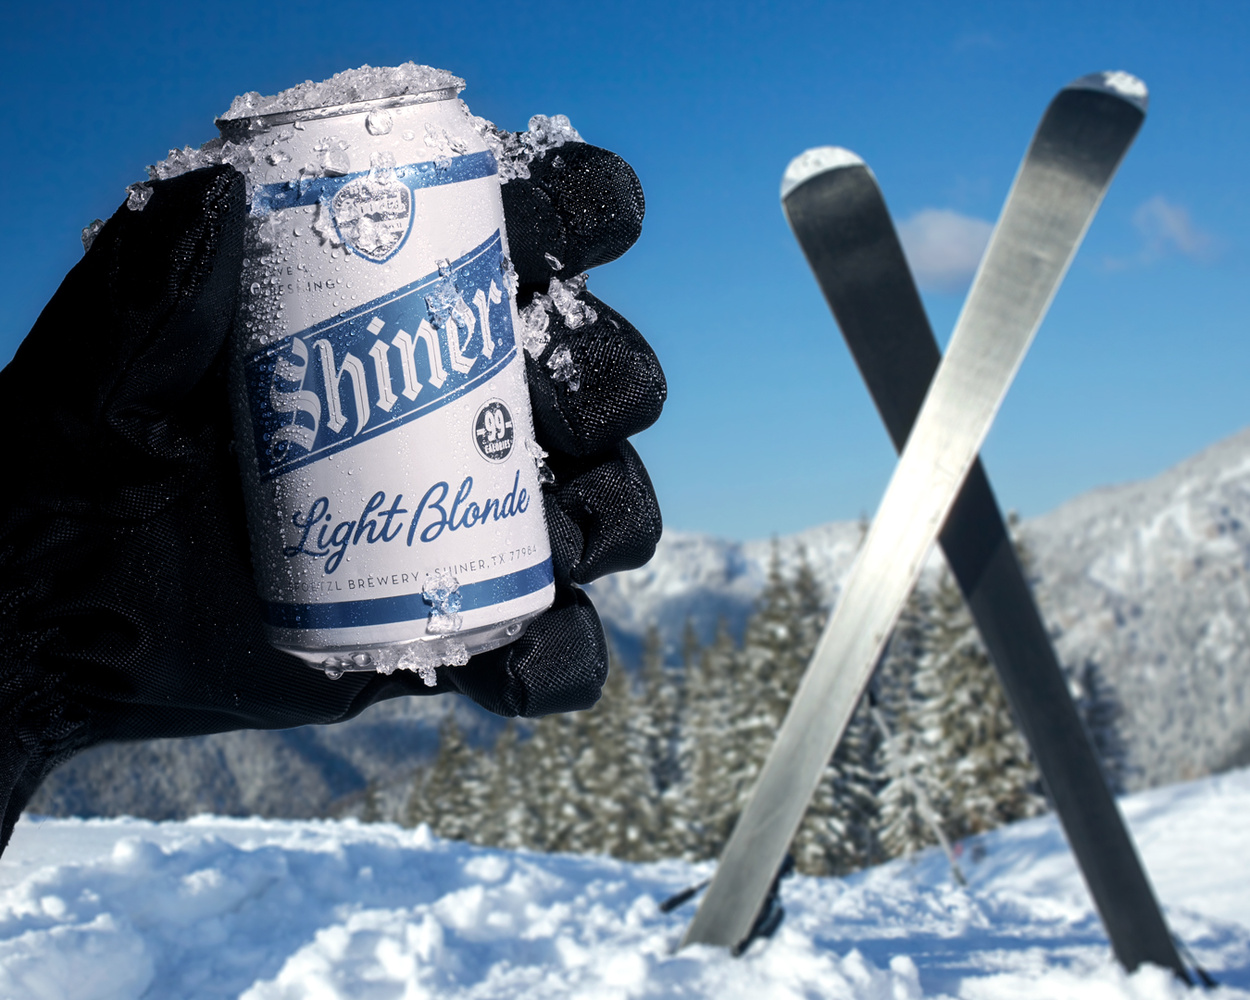 Shiner on the Slopes by John Dawson